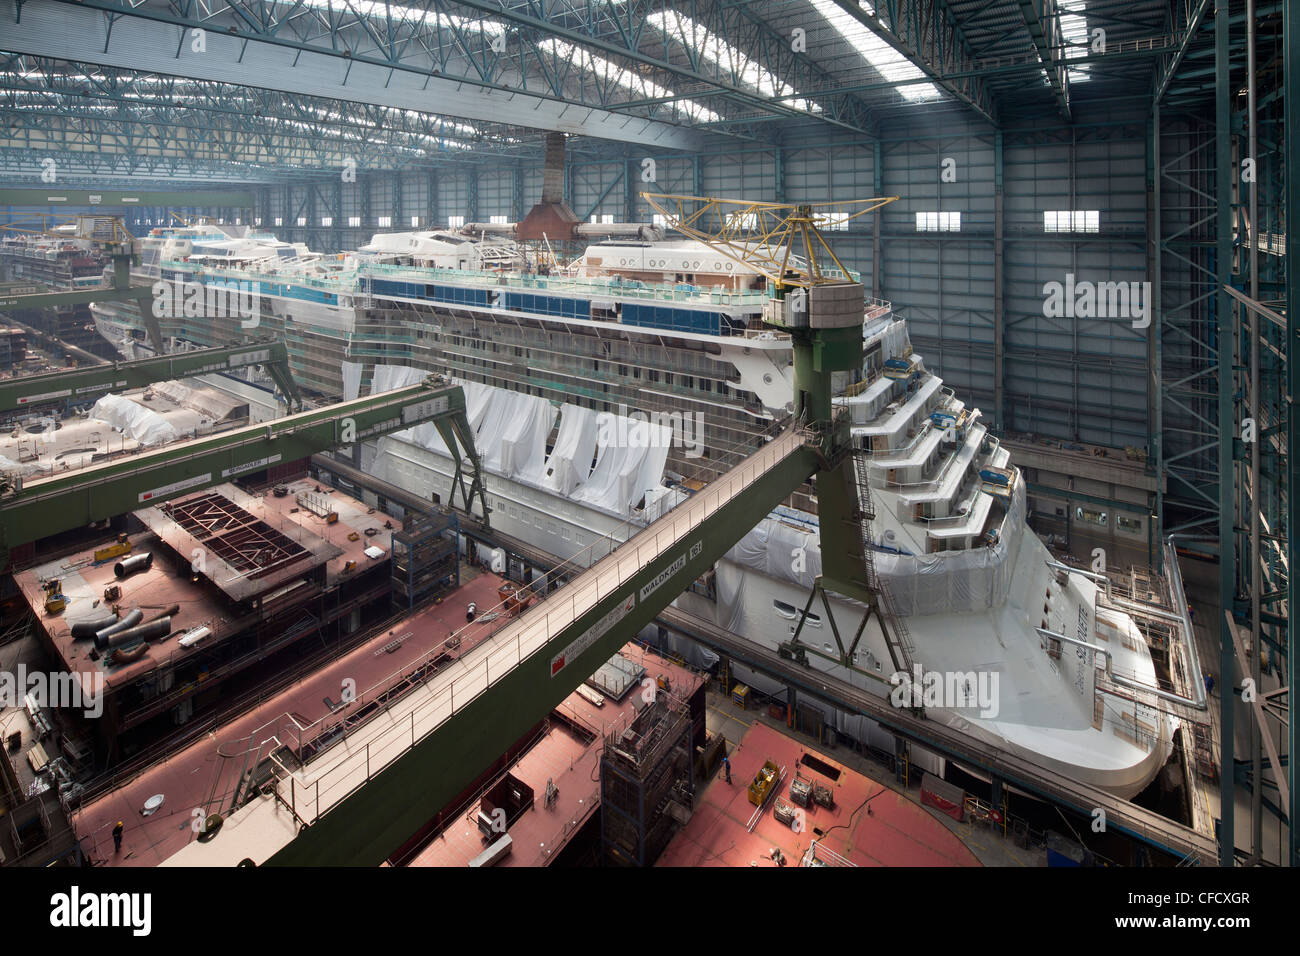 Cruiser under construction in dry dock, Meyer Werft, Papenburg, Lower Saxony, Germany Stock Photo